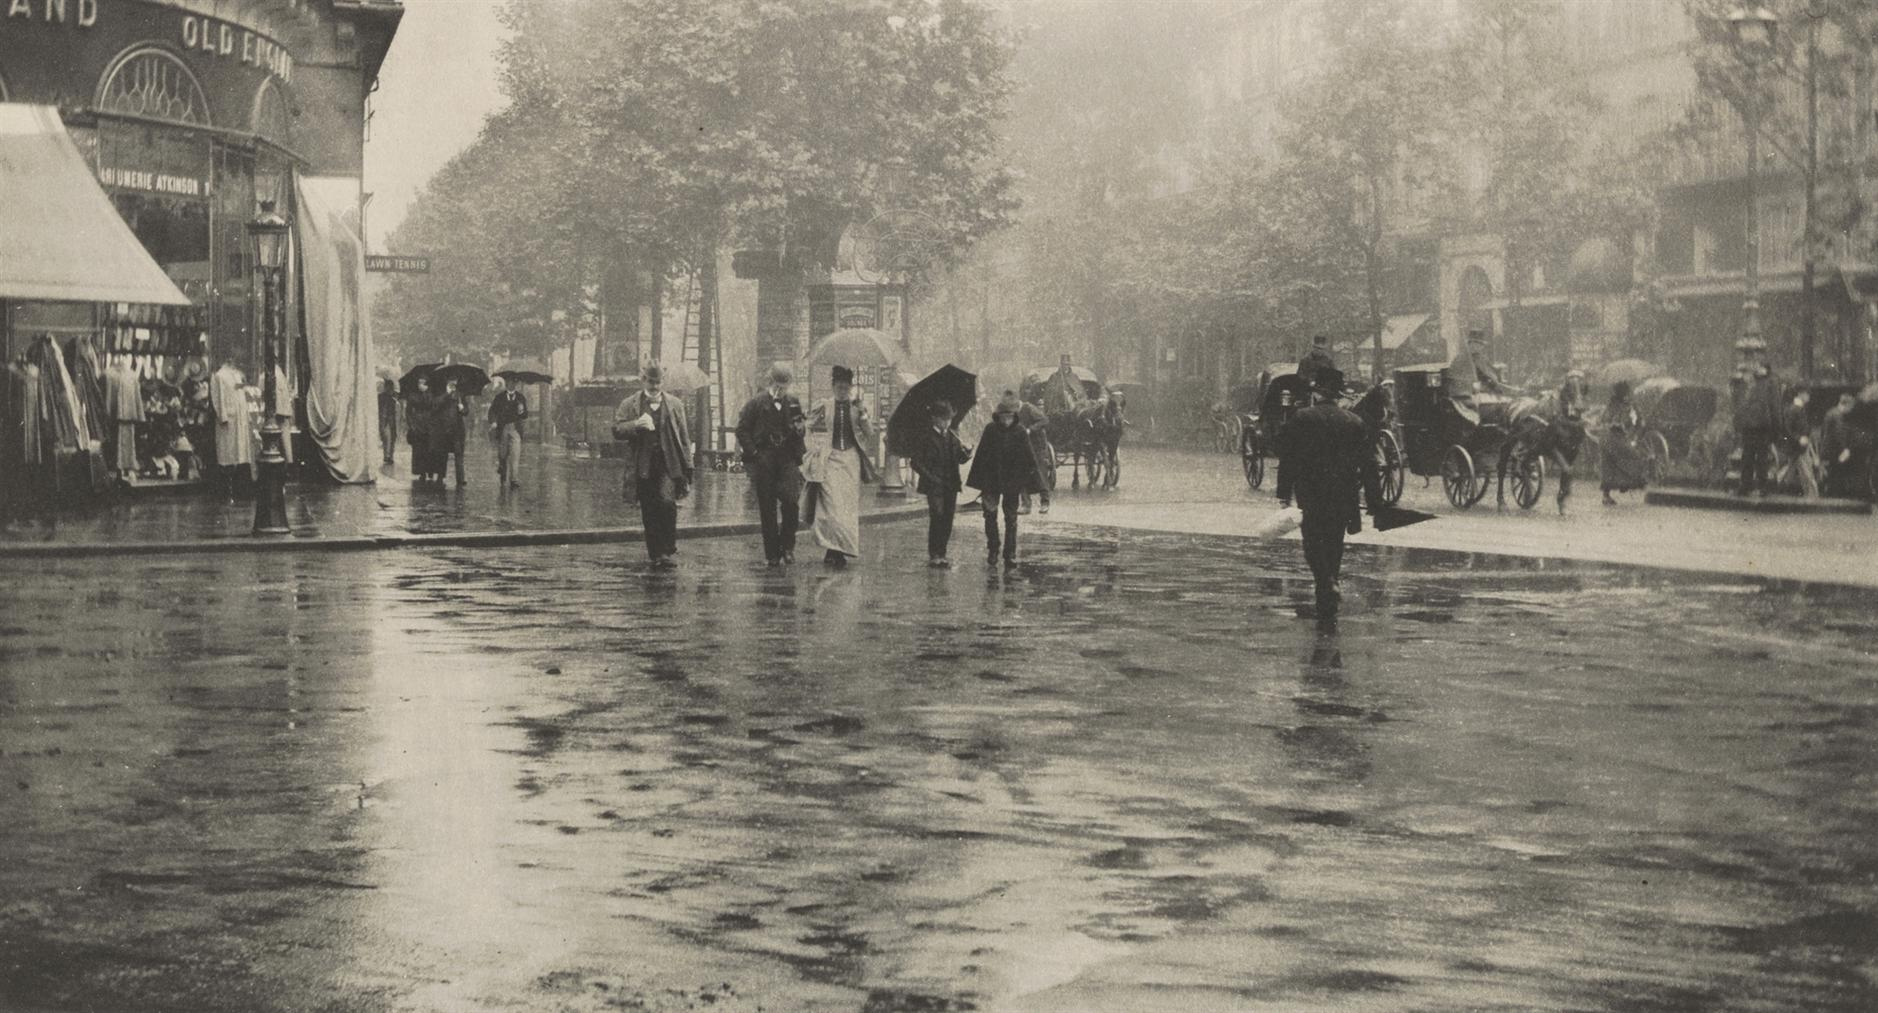 Alfred Stieglitz-A Wet Day On The Boulevard, Paris, 1894 From Picturesque Bits Of New York And Other Studies-